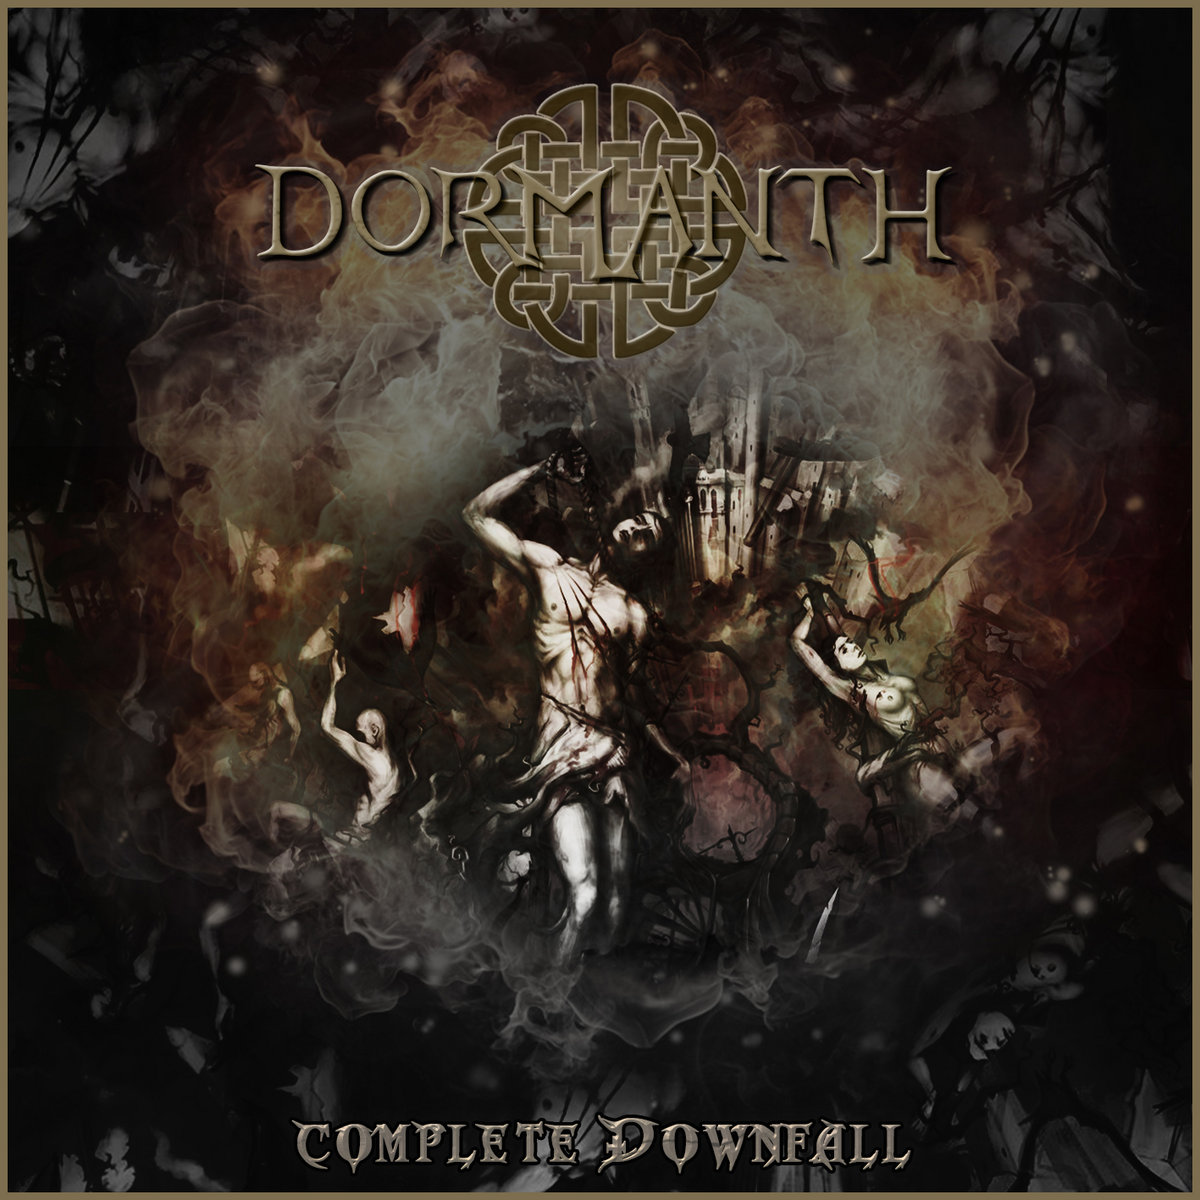 Complete Downfall - 517